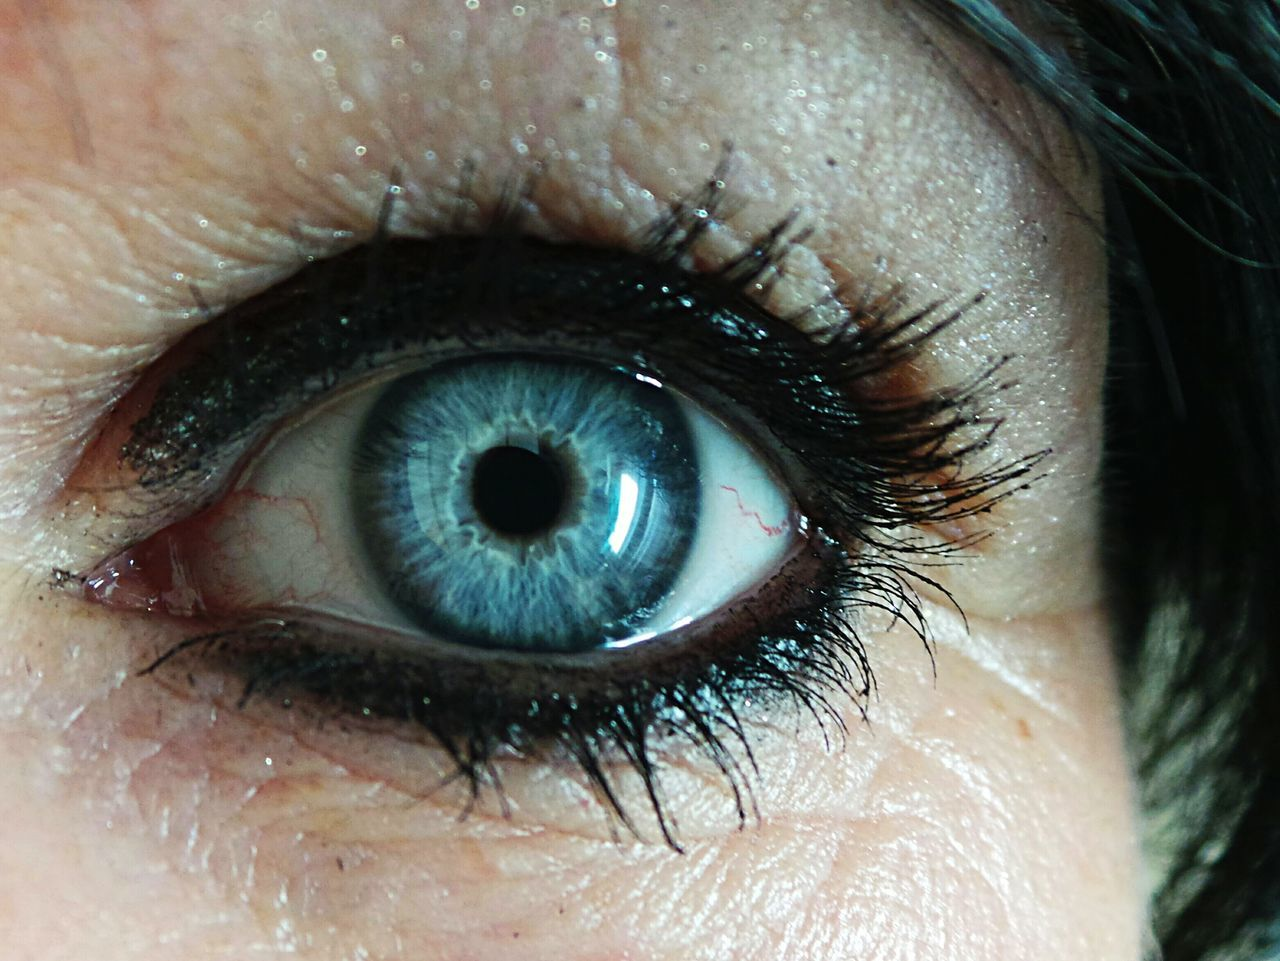 human eye, human body part, eyelash, one person, close-up, macro, eyesight, eyeball, looking at camera, real people, human skin, sensory perception, iris - eye, eyebrow, portrait, outdoors, day, adult, people, adults only